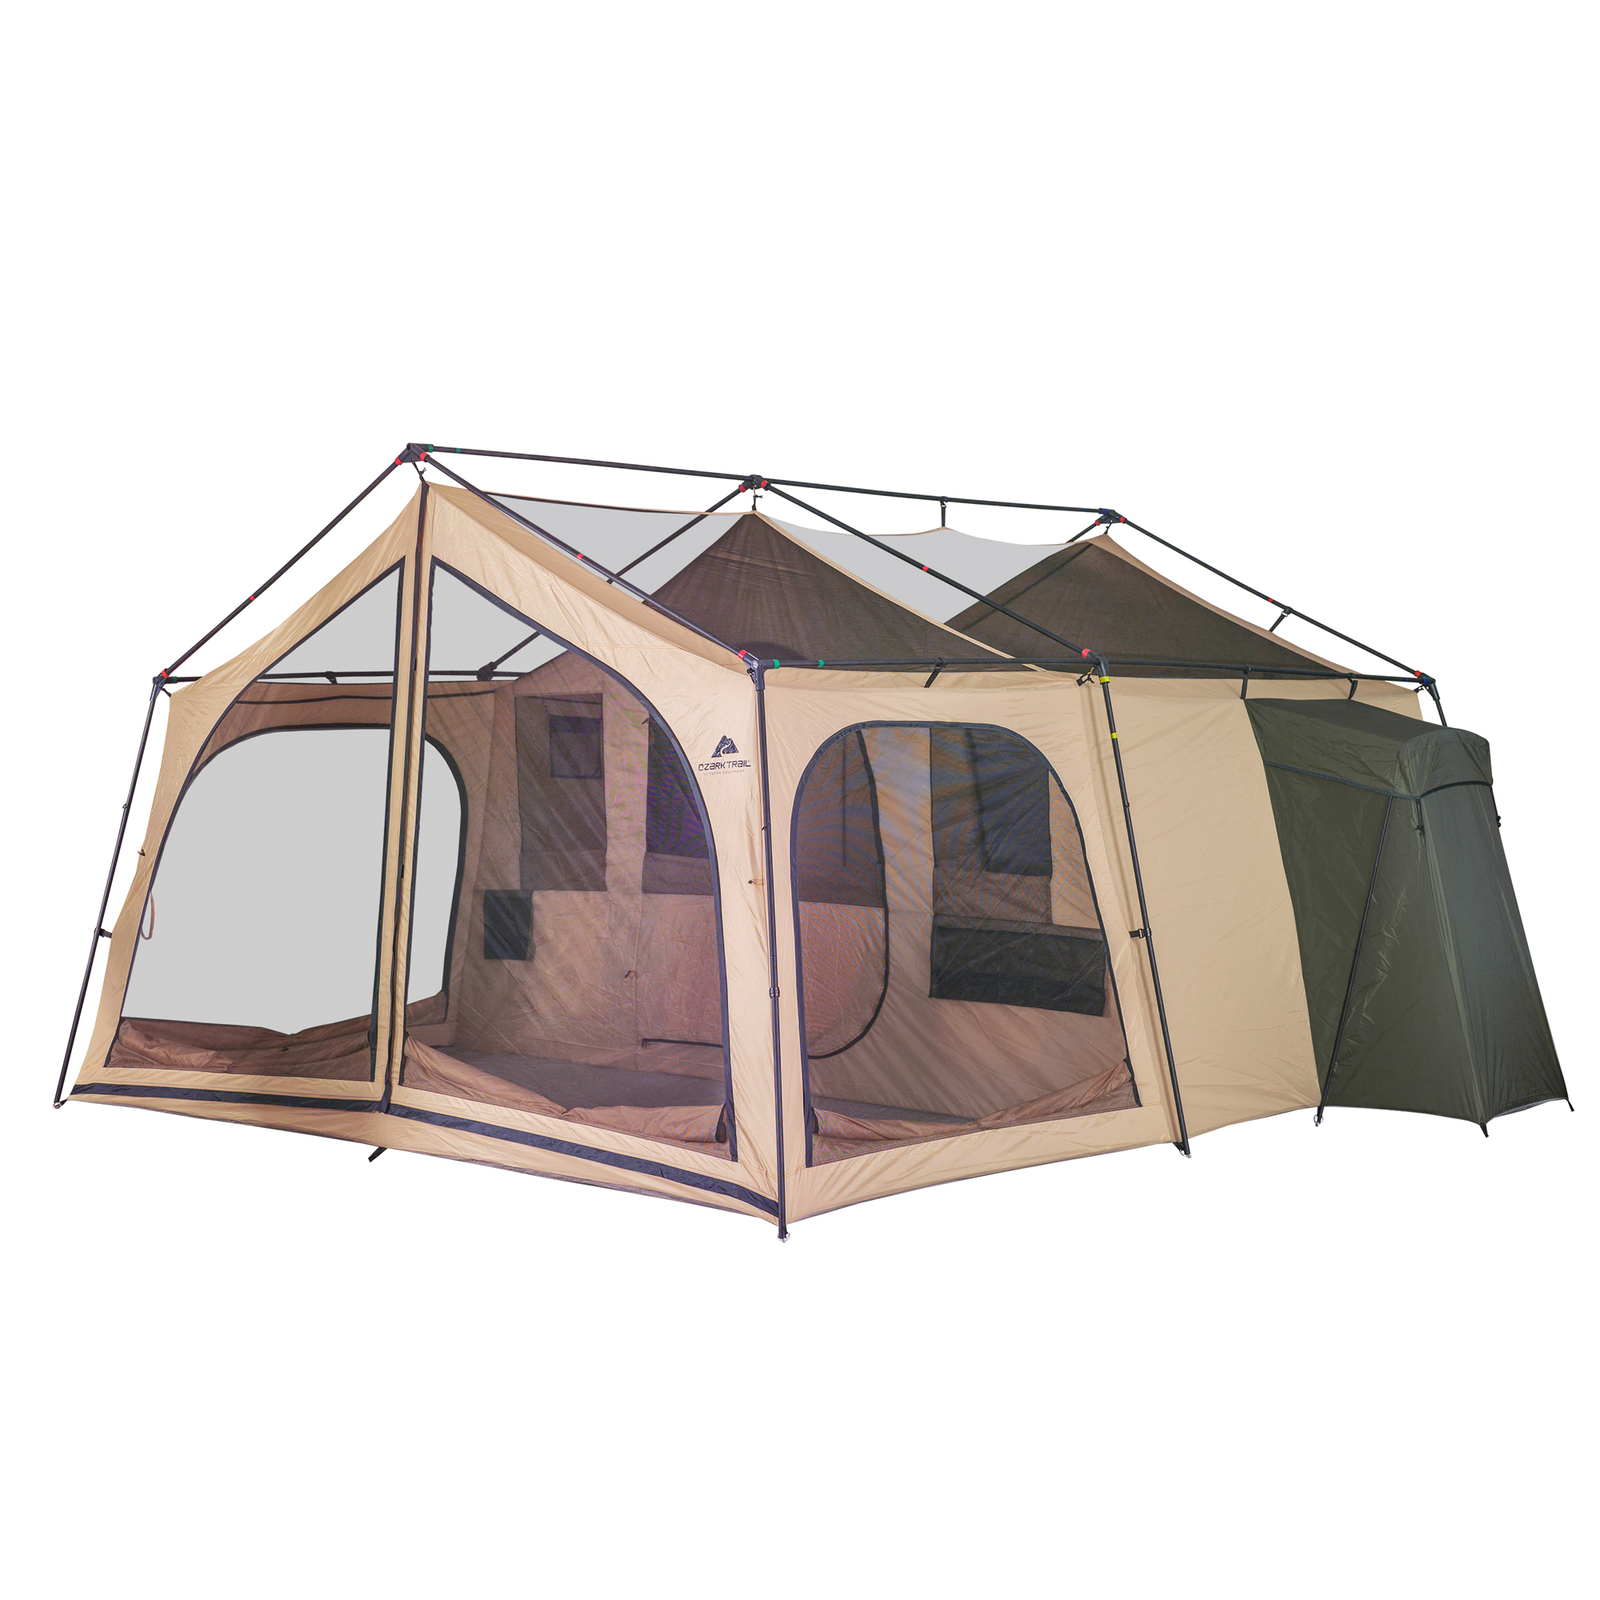 Large Camping Tent Outdoor Picnic Travel Family Cabin ...